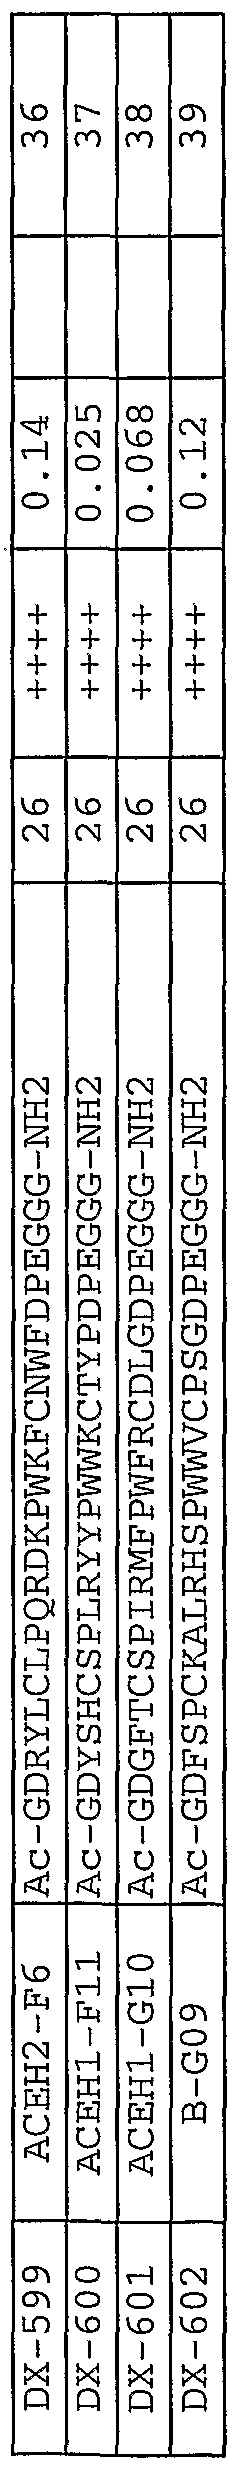 WO2002098448A1 - Methods and compositions for modulating ace-2